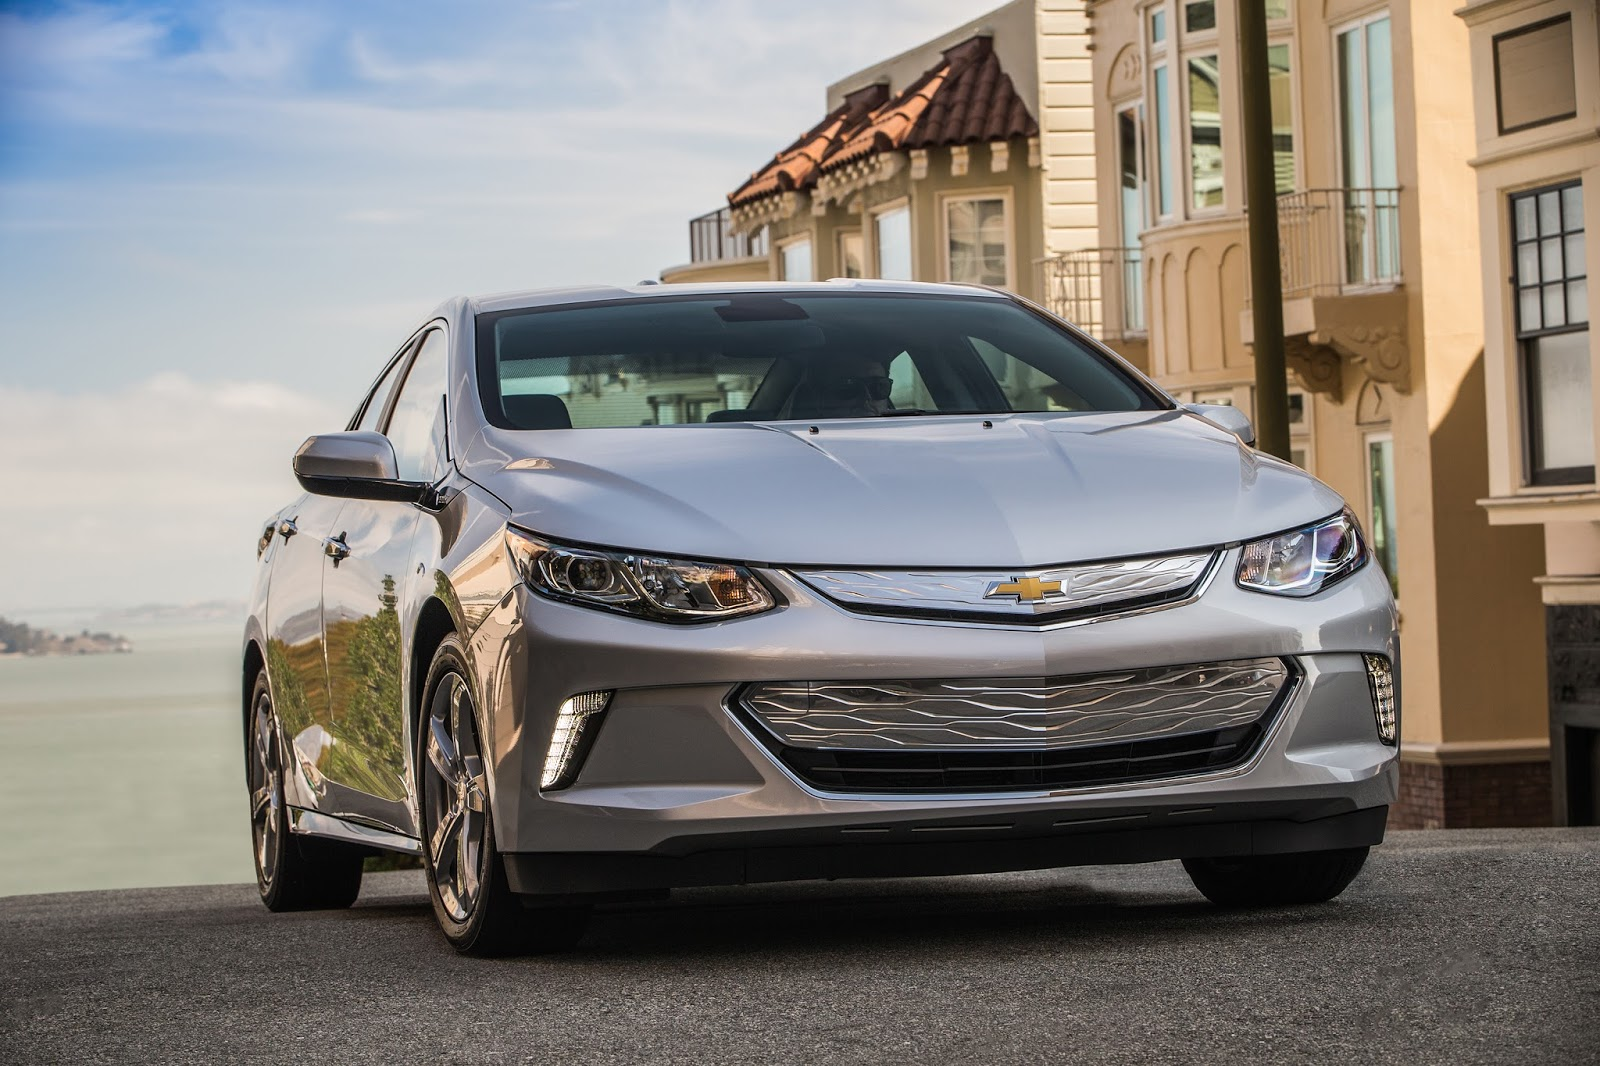 Front 3/4 view of 2017 Chevrolet Volt